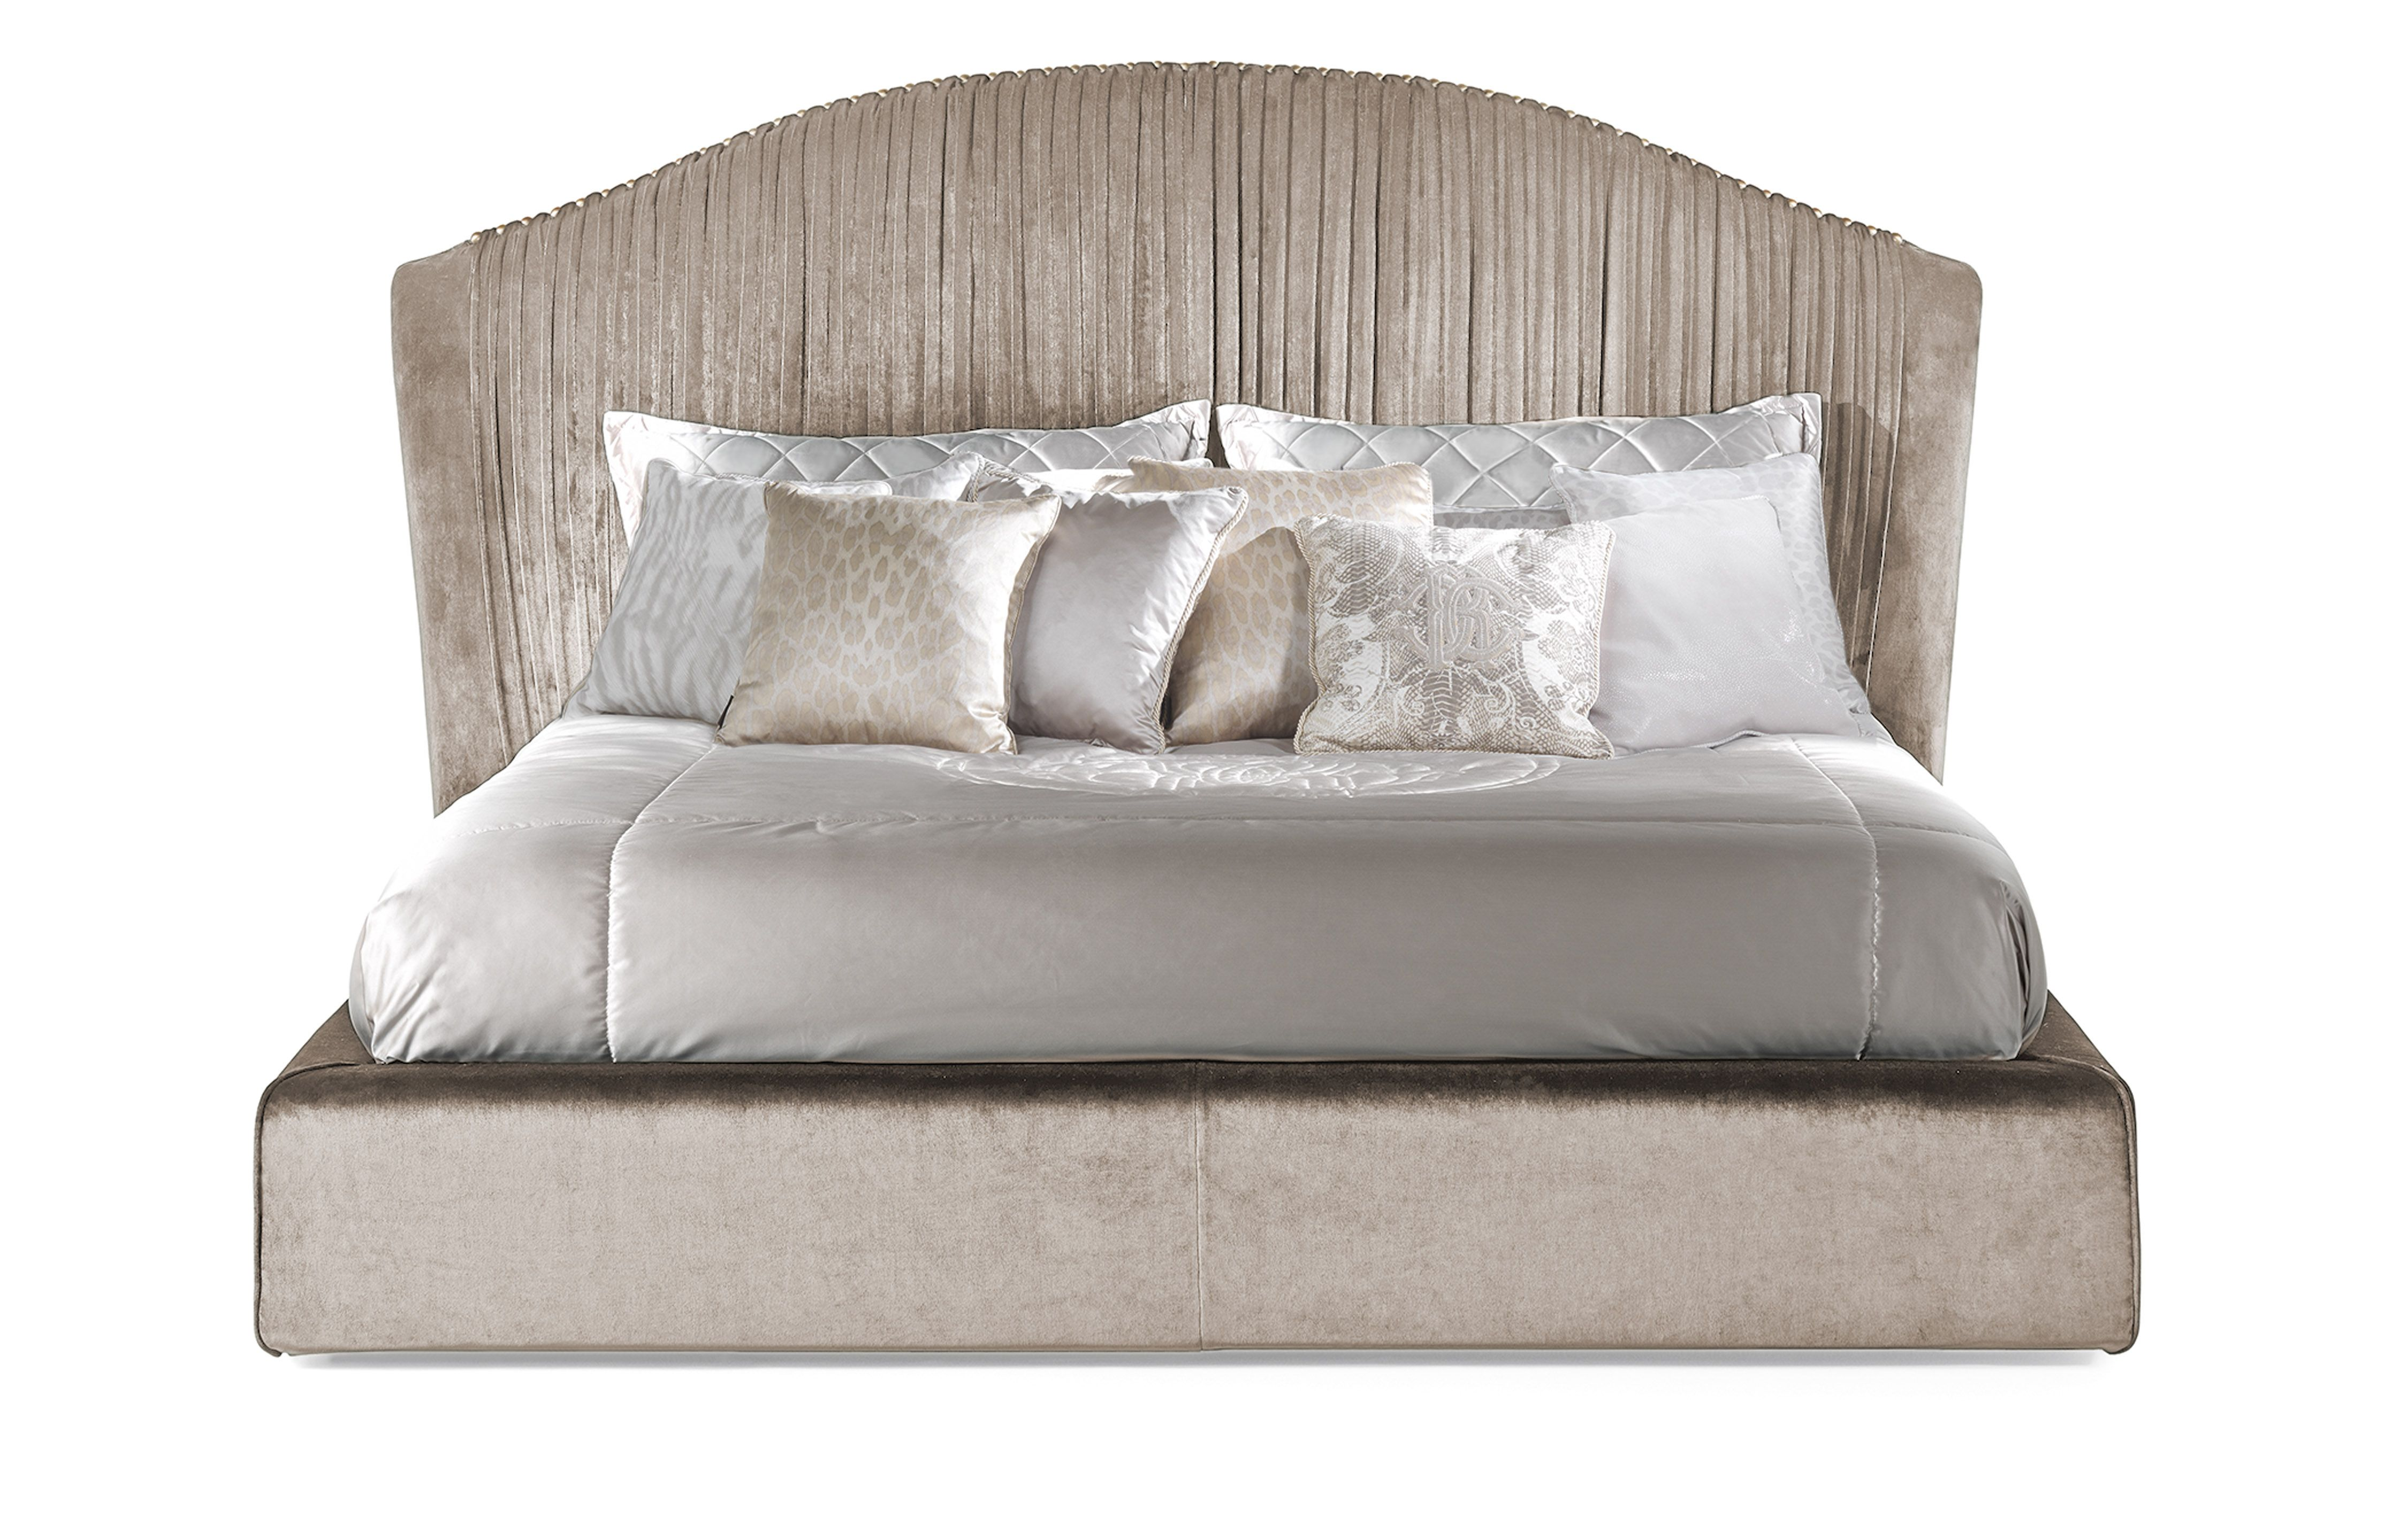 sophisticated bedroom furniture. the sophisticated neutral sharpei bed is perfect solution for any bedroomu2026 bedroom furniture